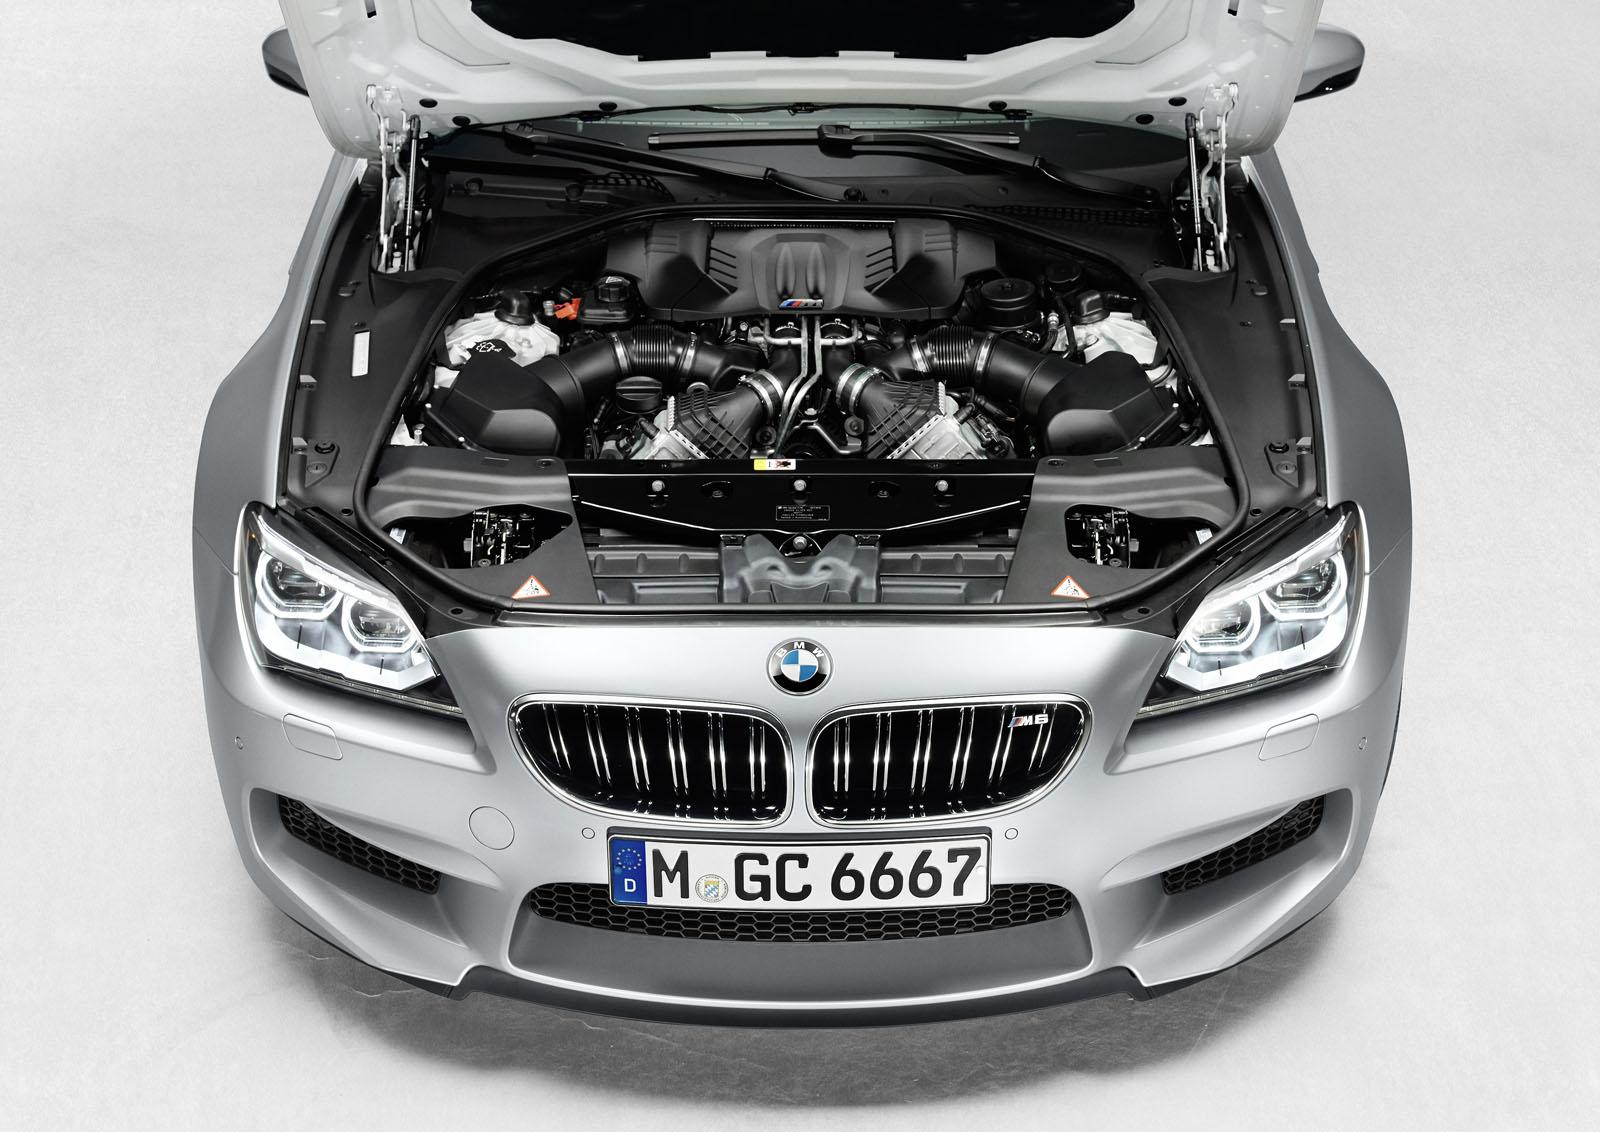 bmw-m6-gran-coupe-engine